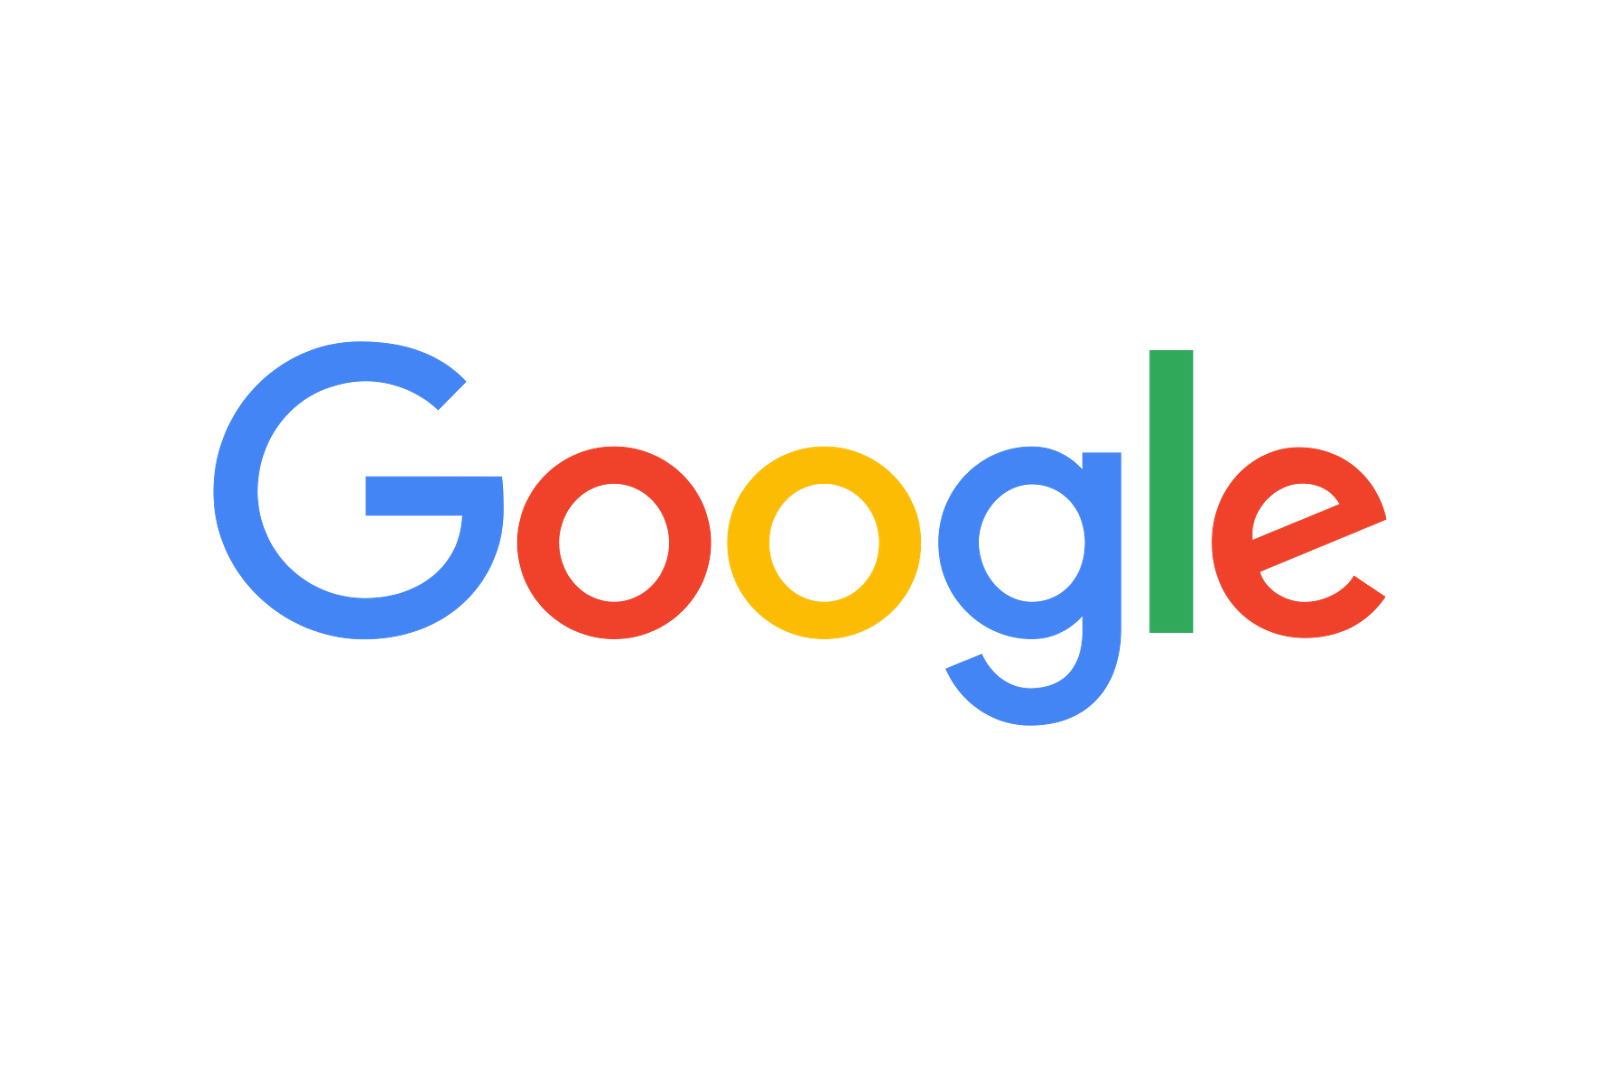 Adwords Search Google Free Download PNG HD PNG Image